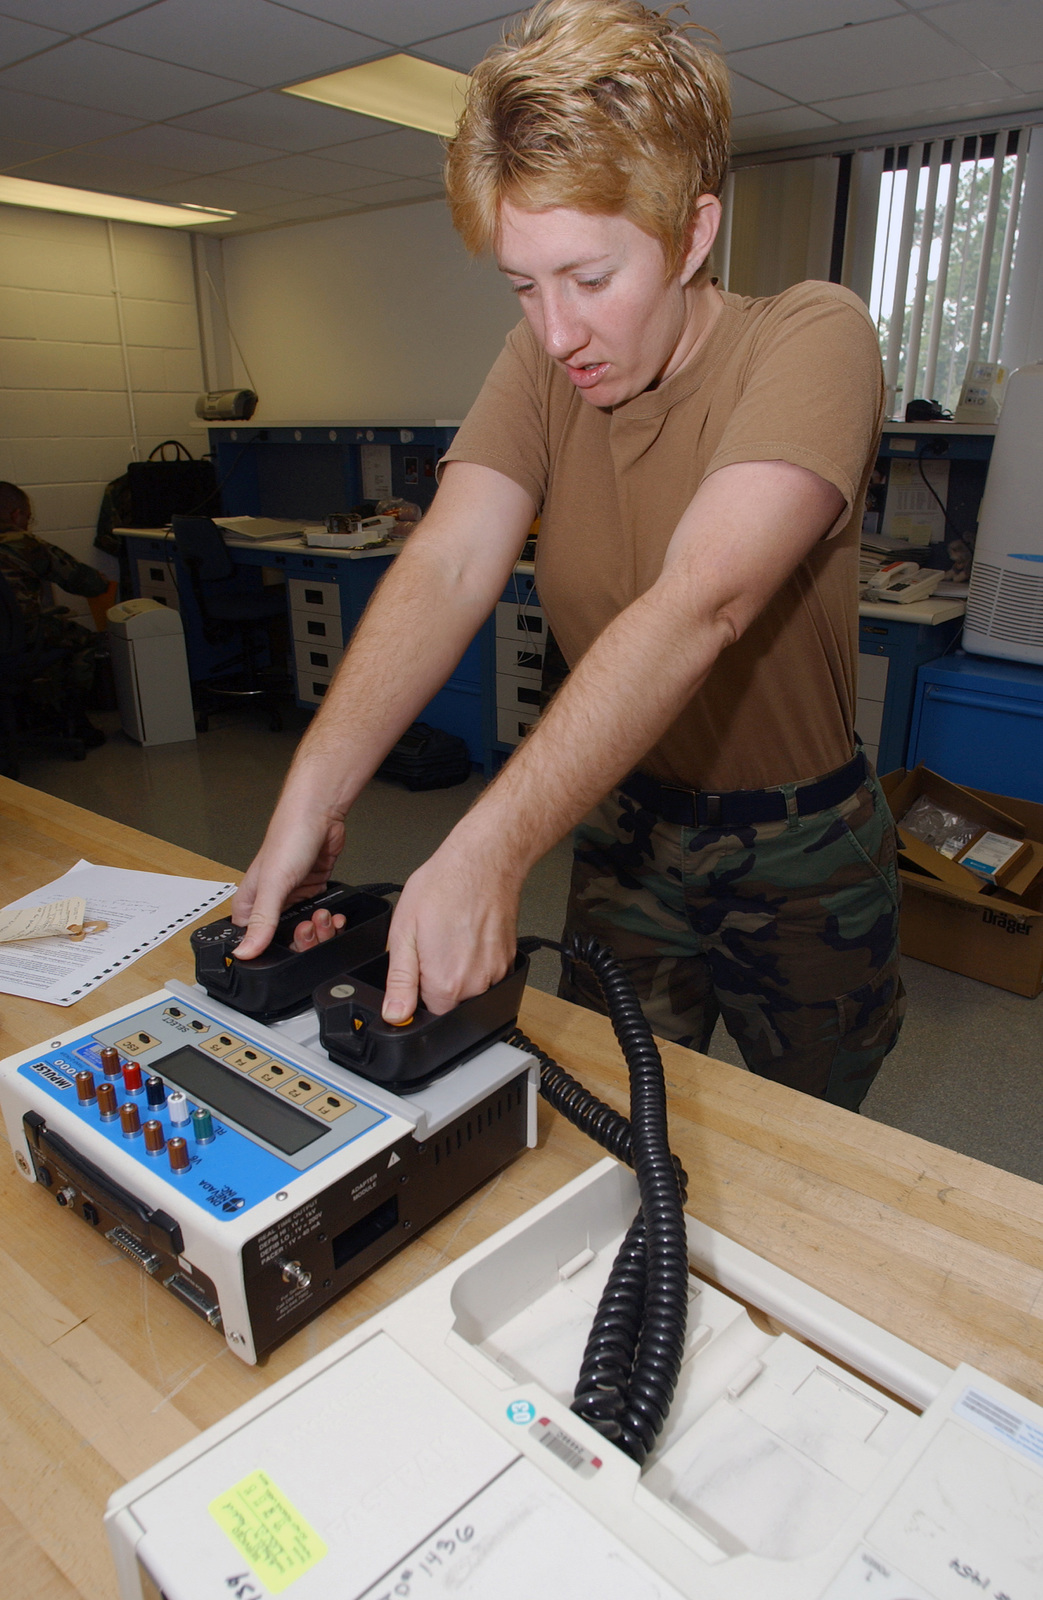 US Air Force (USAF) AIRMAN First Class (A1C) Jana Madrid, with the 48th Medical Support Squadron (MSS), Royal Air Force (RAF) Lakenheath, England (ENG), a biomedical technician, does preventative maintenance on a Medtronic Physio Control defibrillator